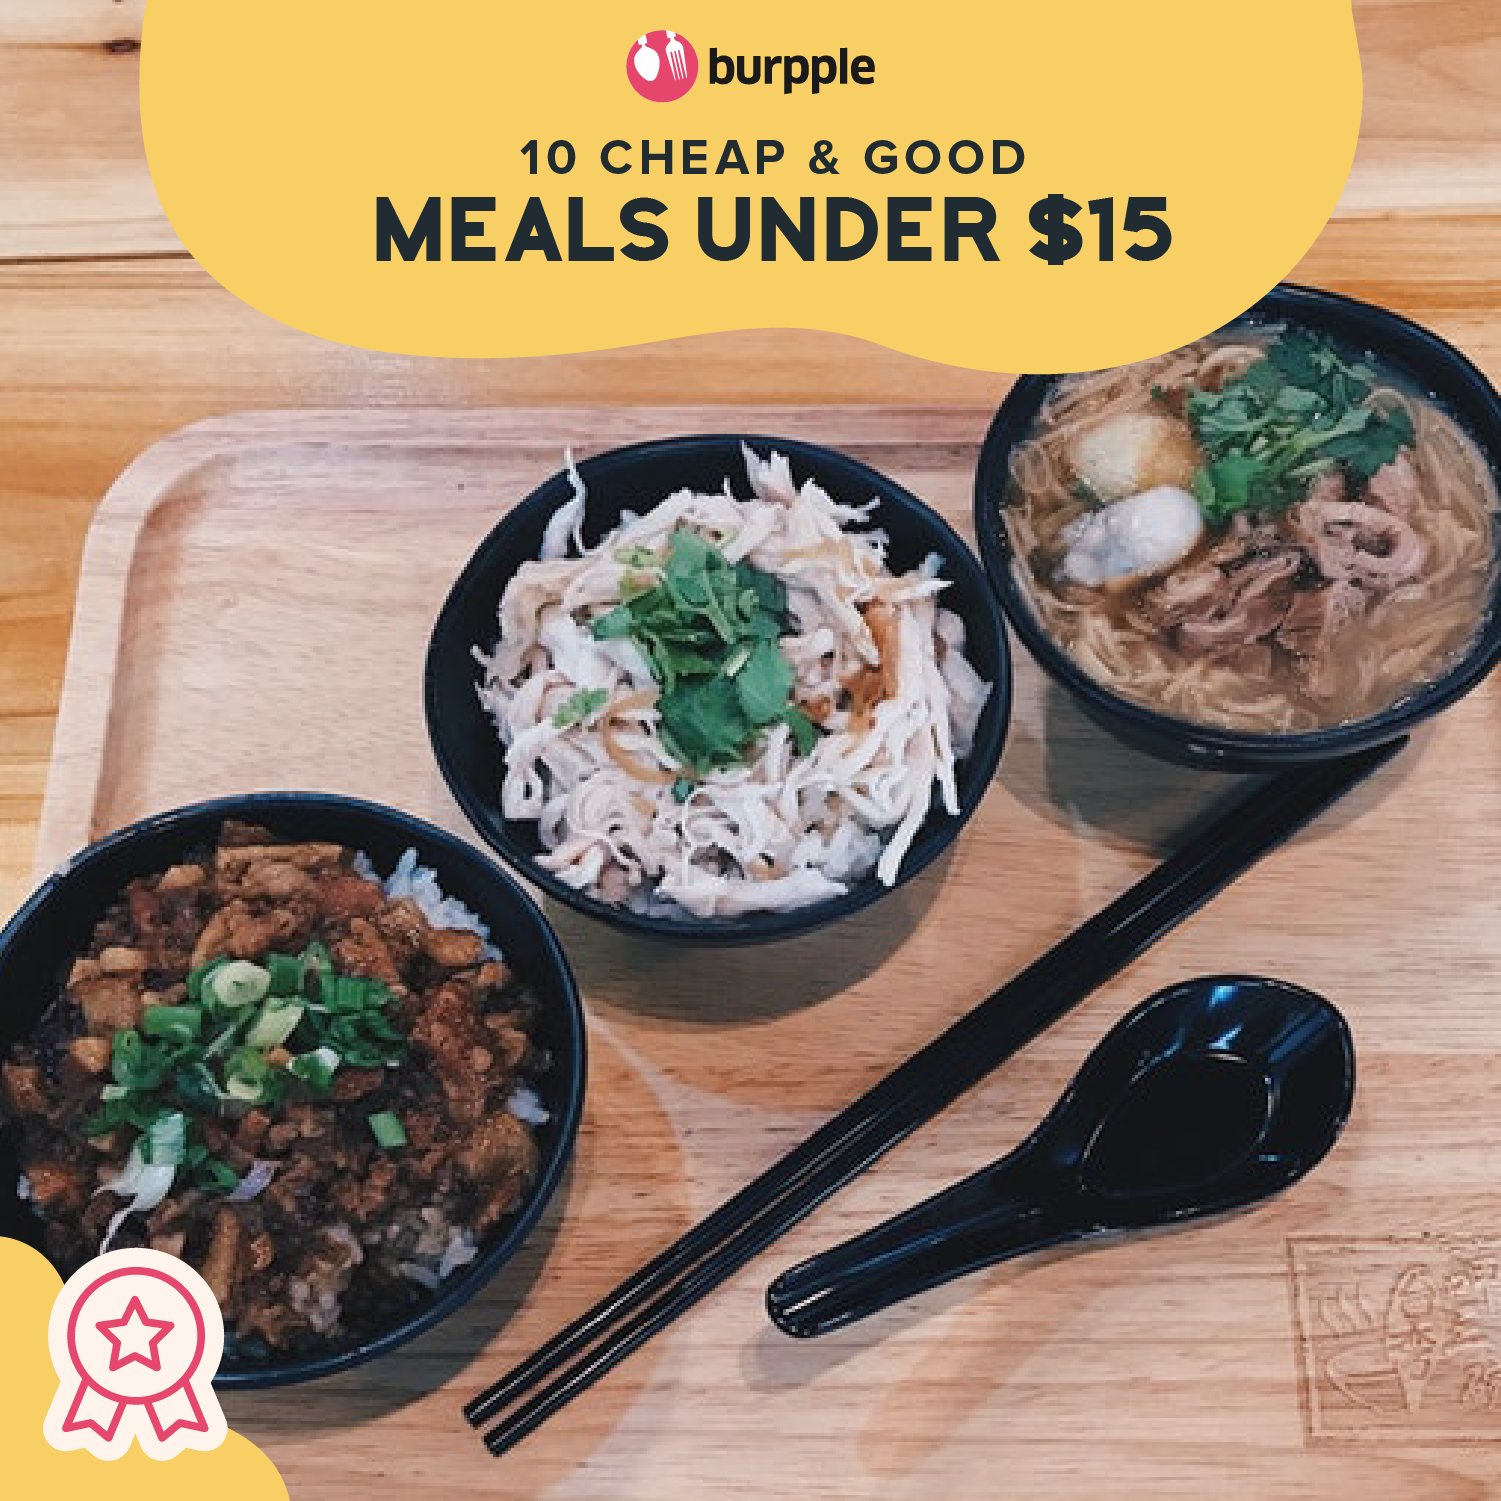 10 Cheap & Good Meals Under $15 in Singapore